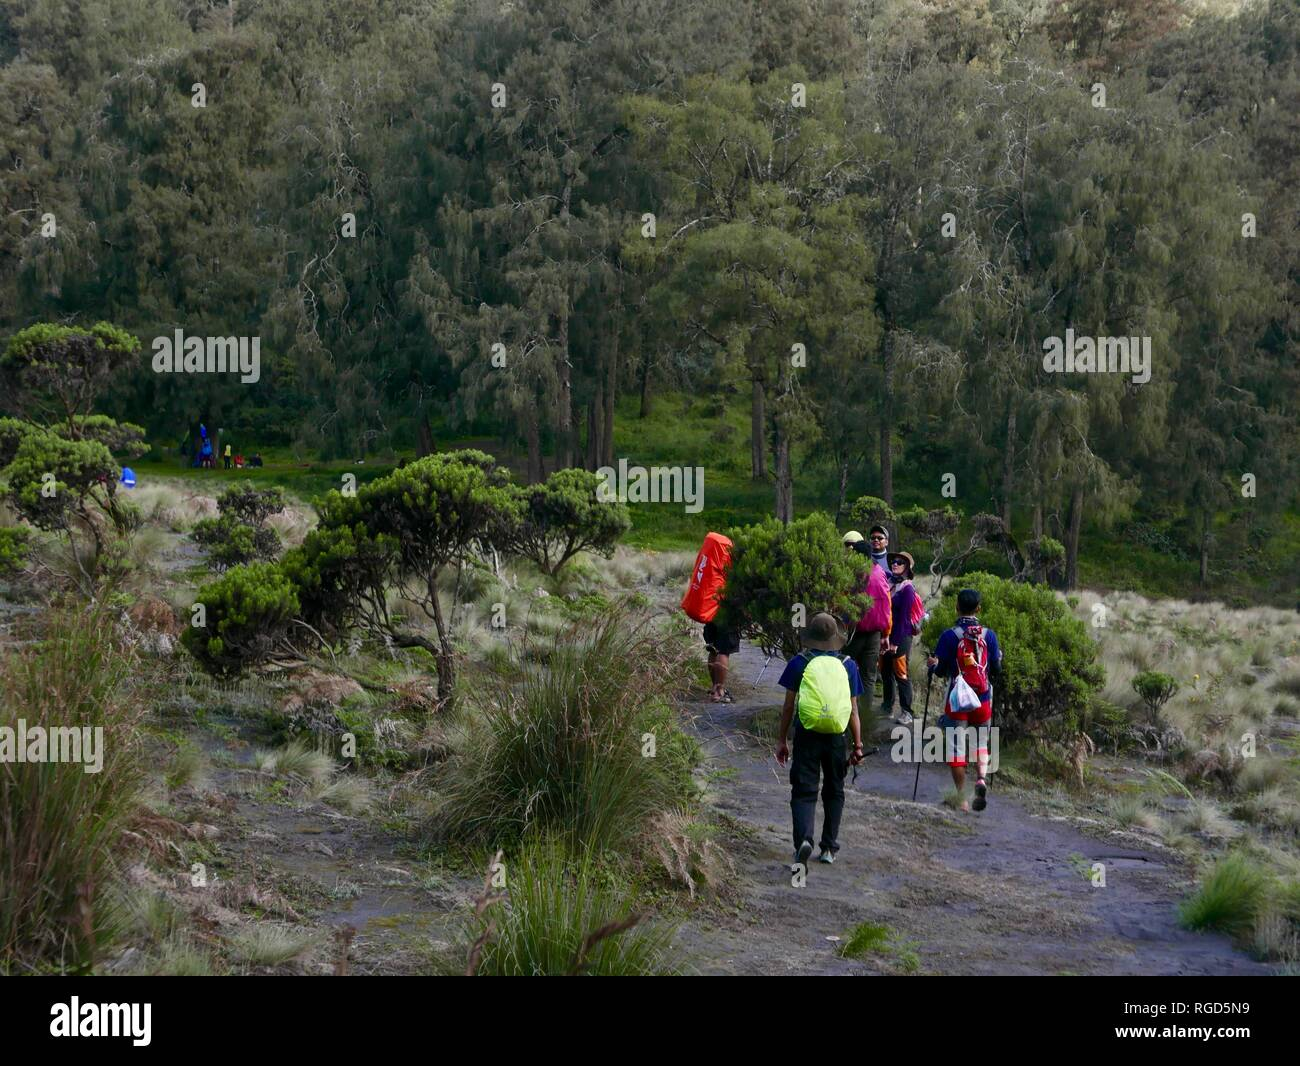 Explore Malang High Resolution Stock Photography And Images Alamy